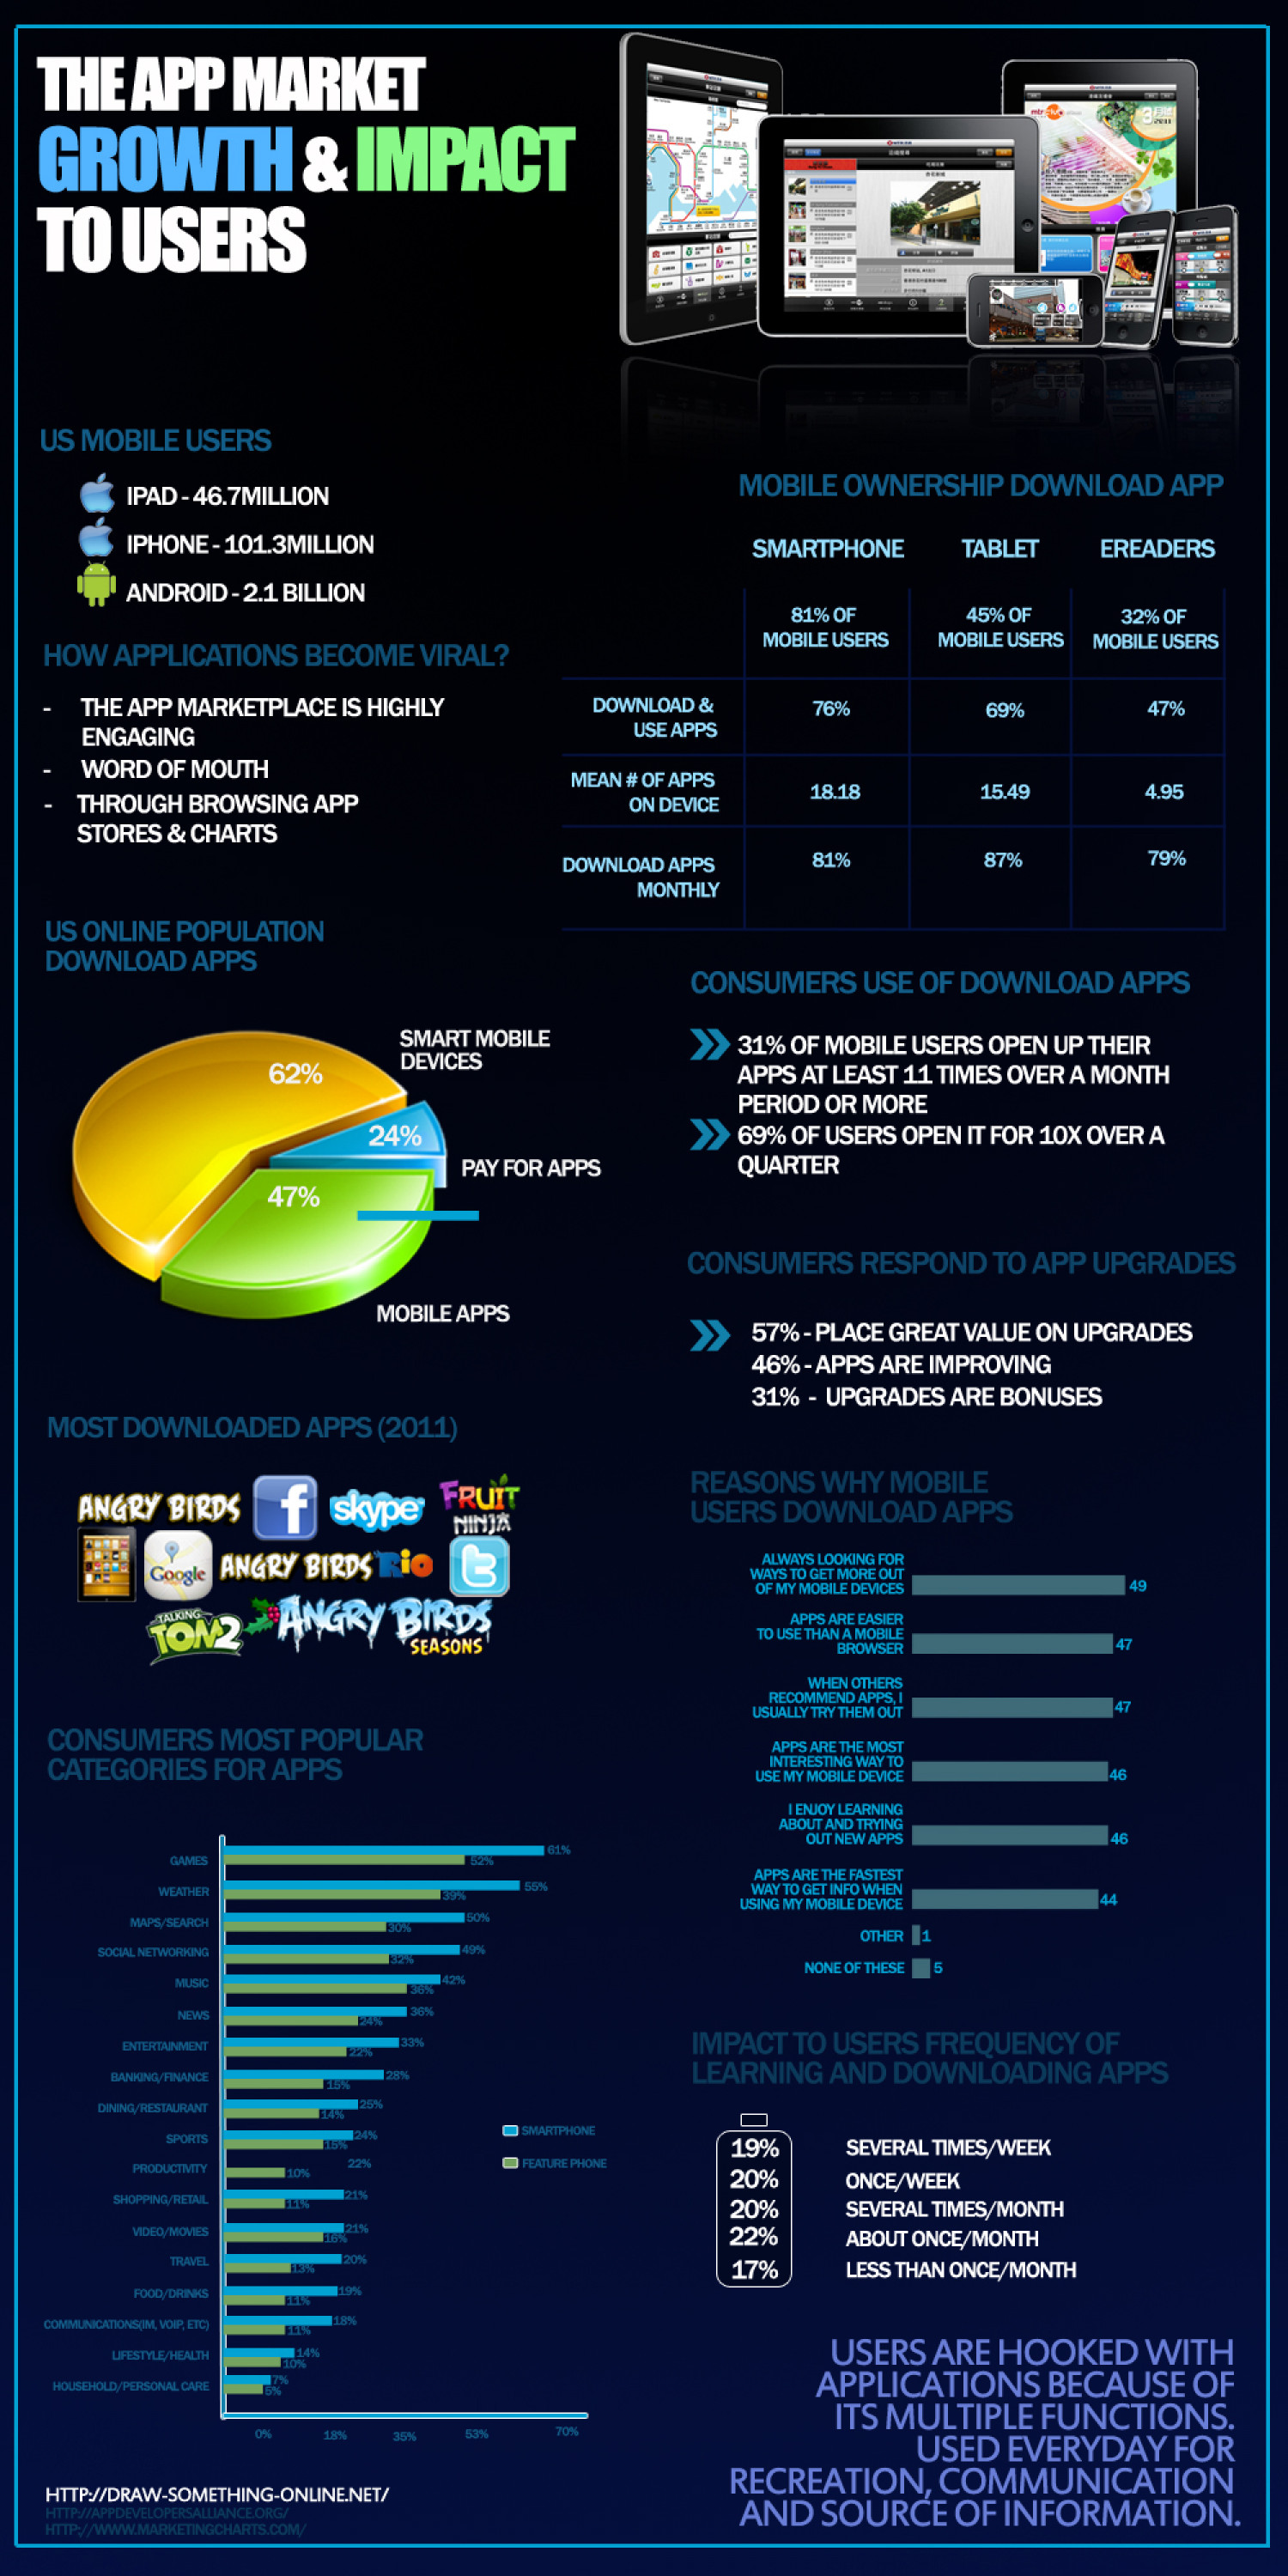 Draw Something Online - Impact and Growth of Online Games Infographic